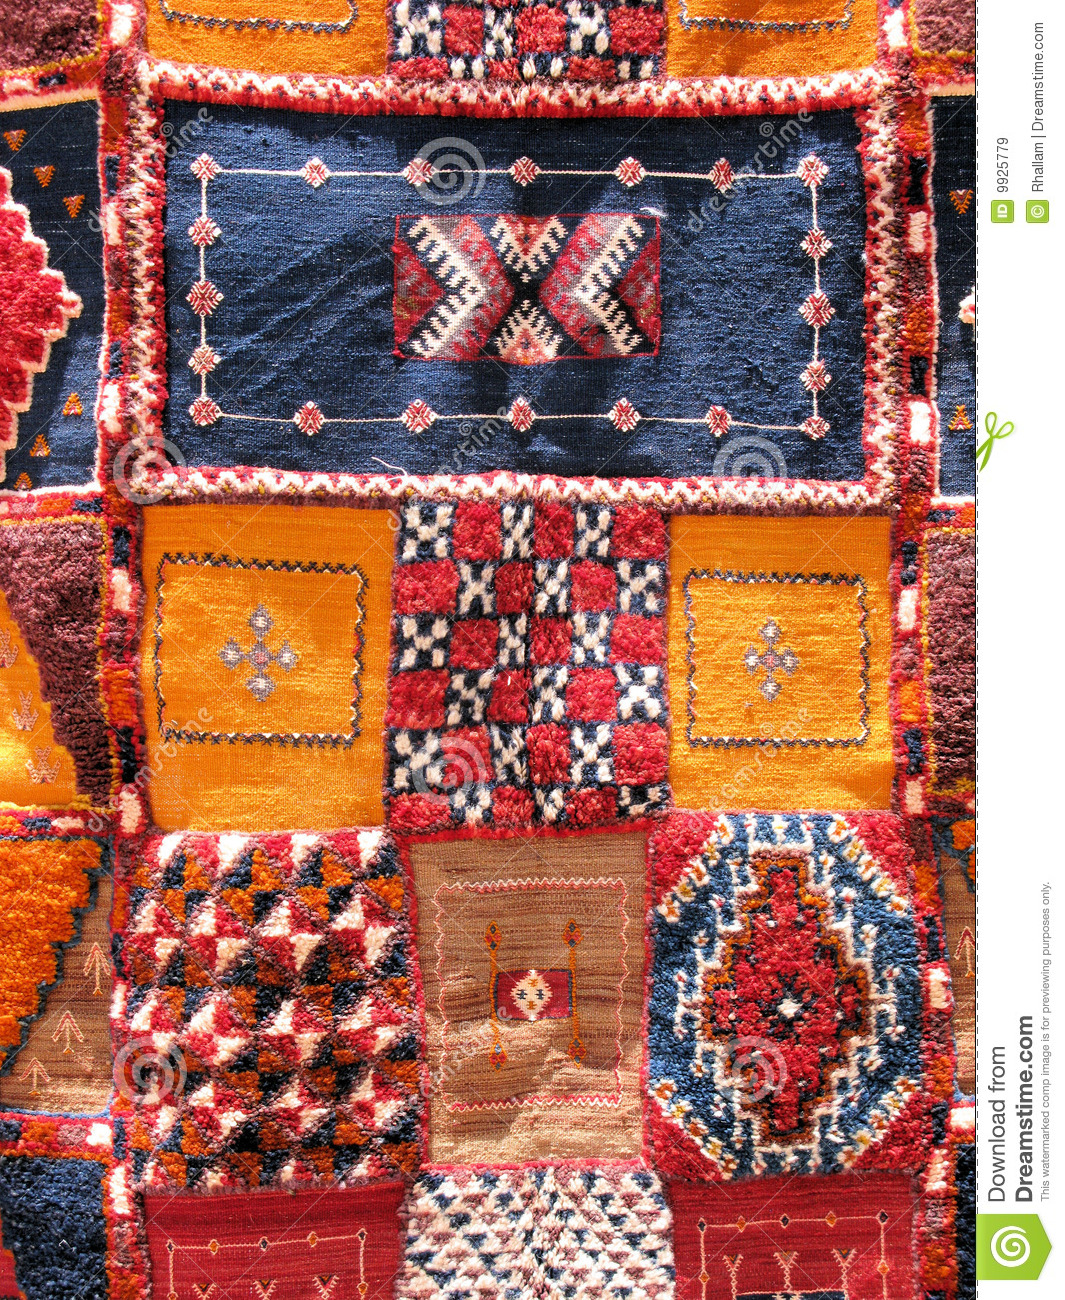 Moroccan Rugs Stock Image Image Of Yellow Home Moroccan